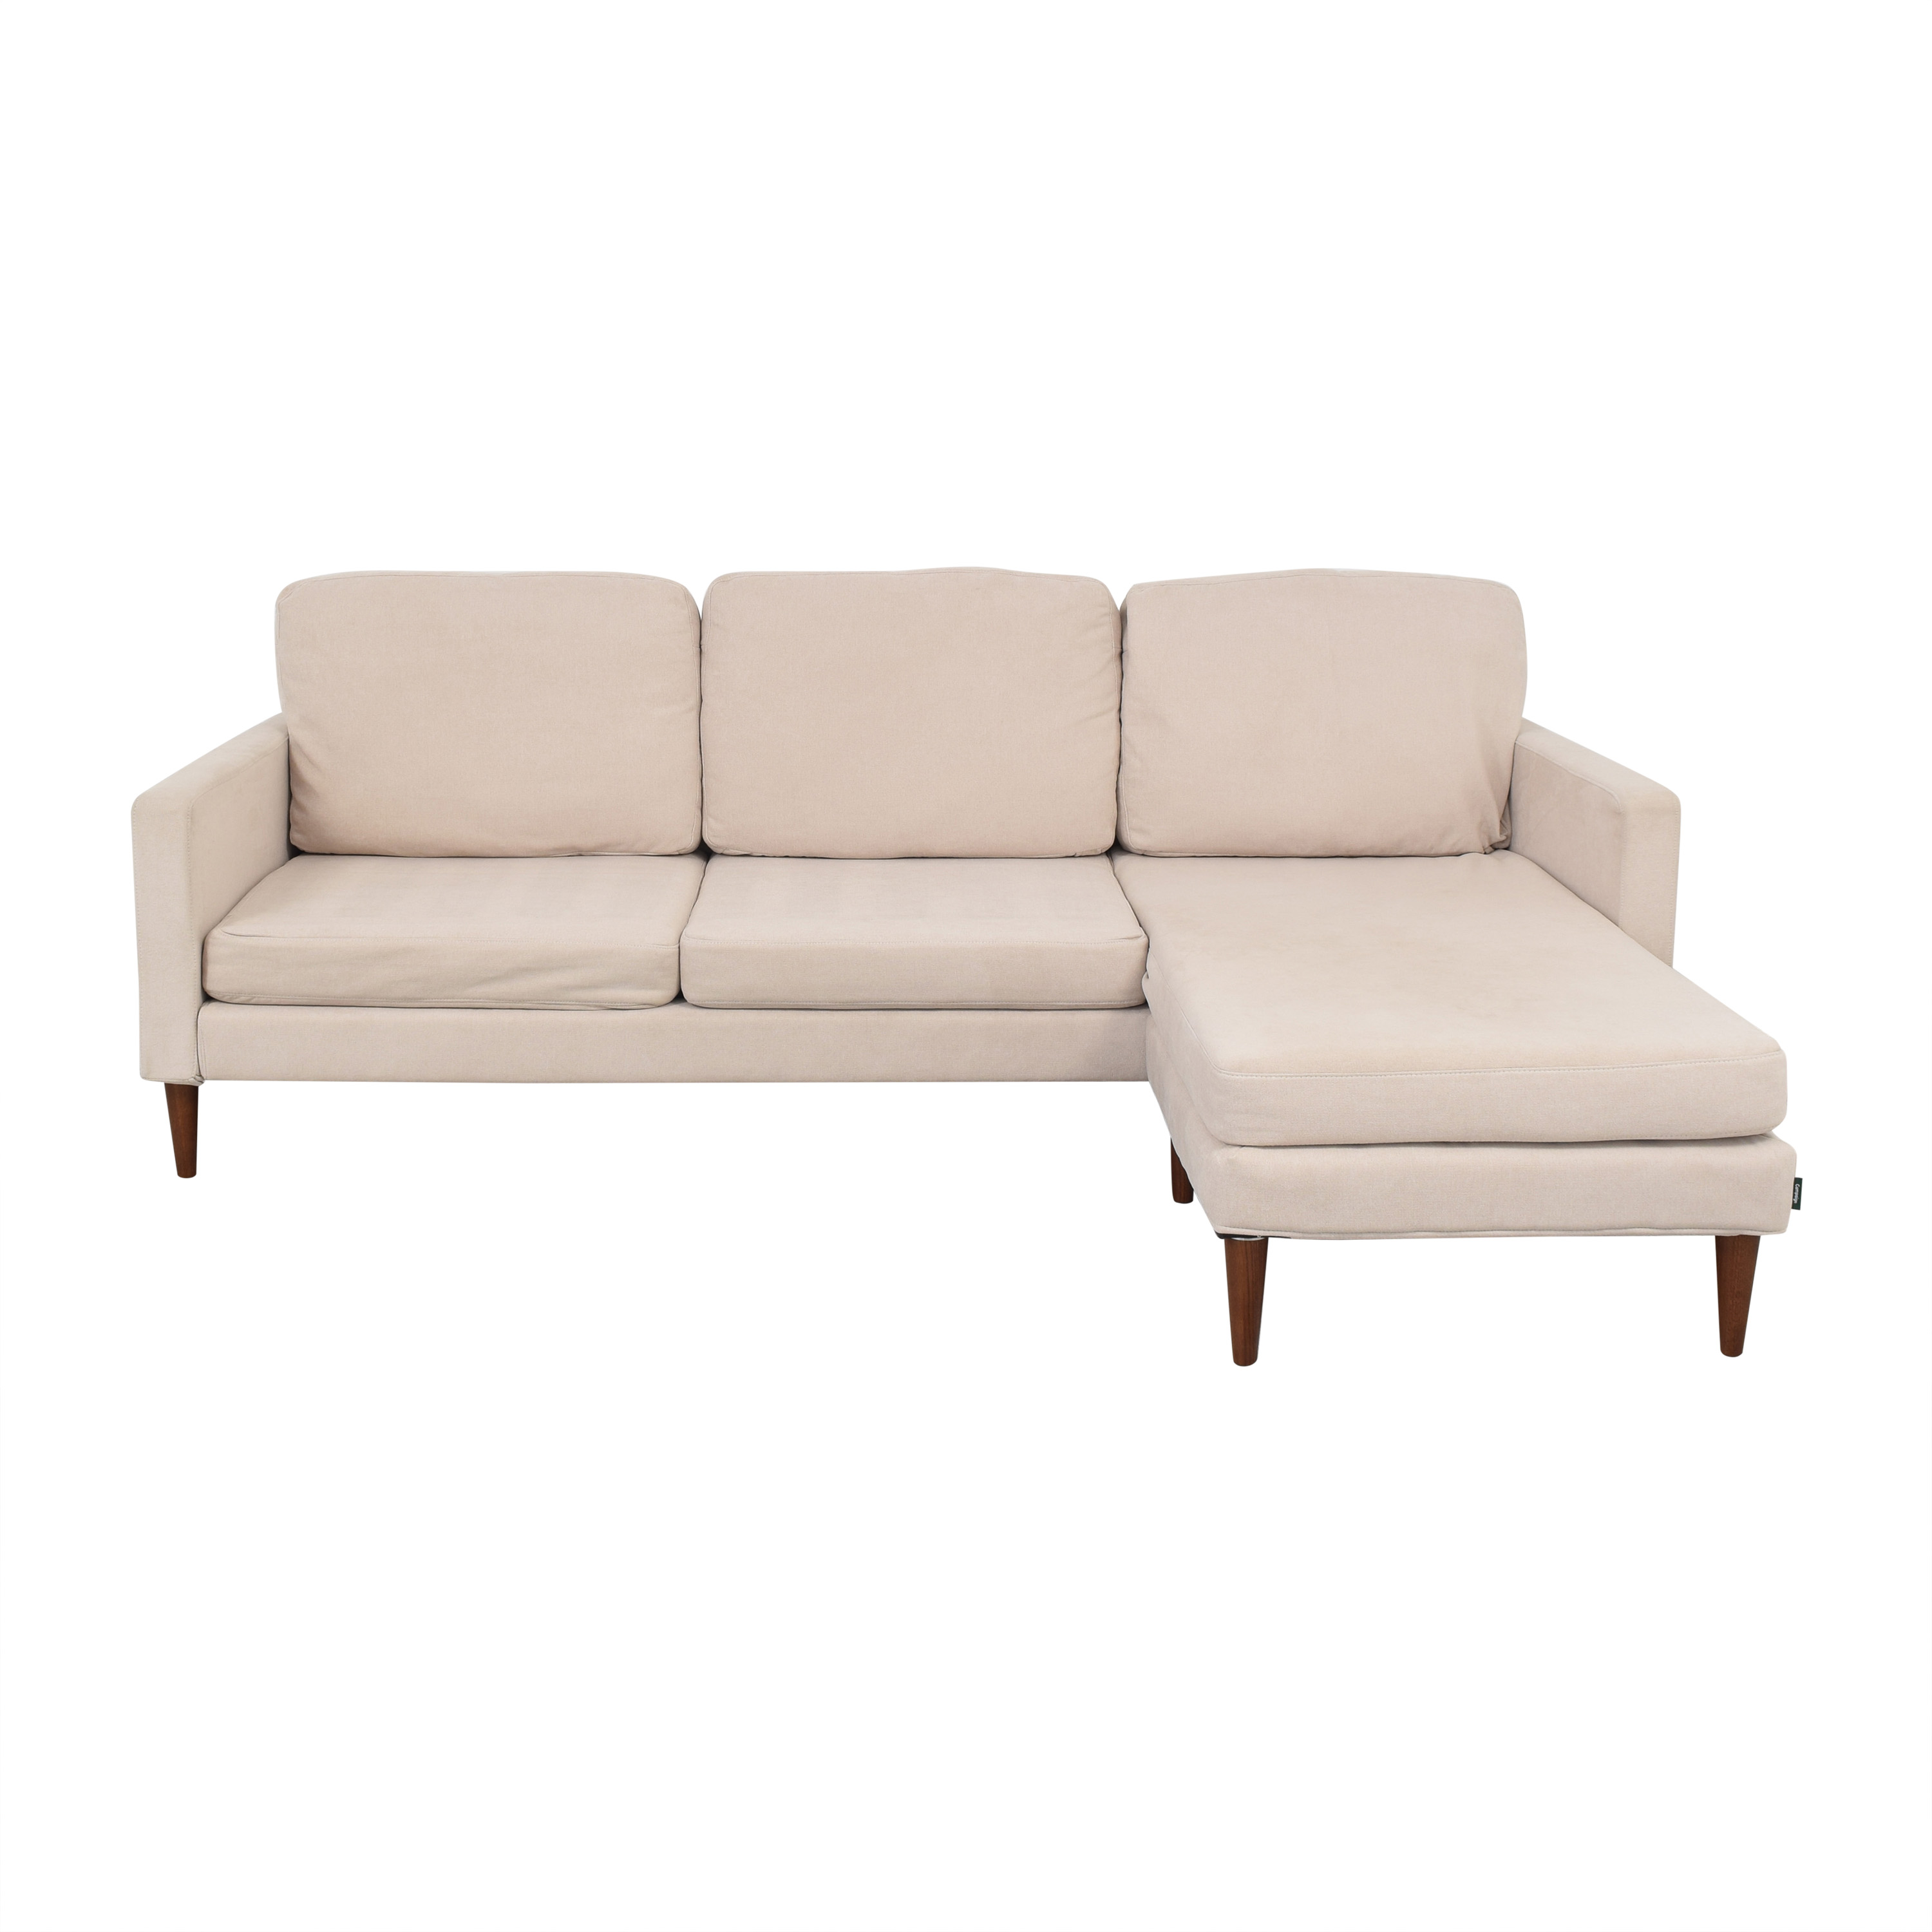 Campaign Campaign Sectional Sofa nyc